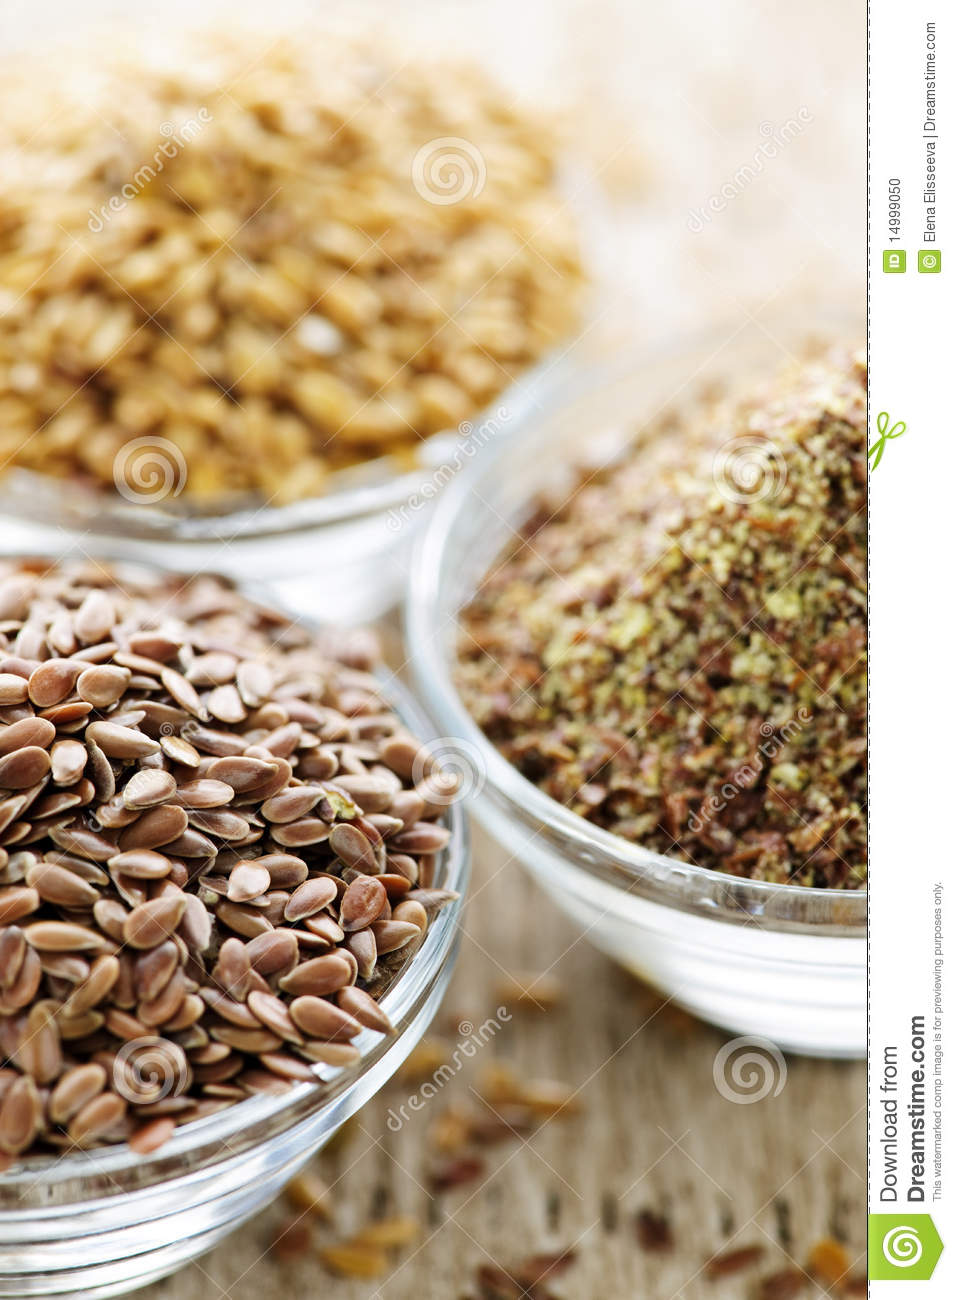 Brown or golden flax seed